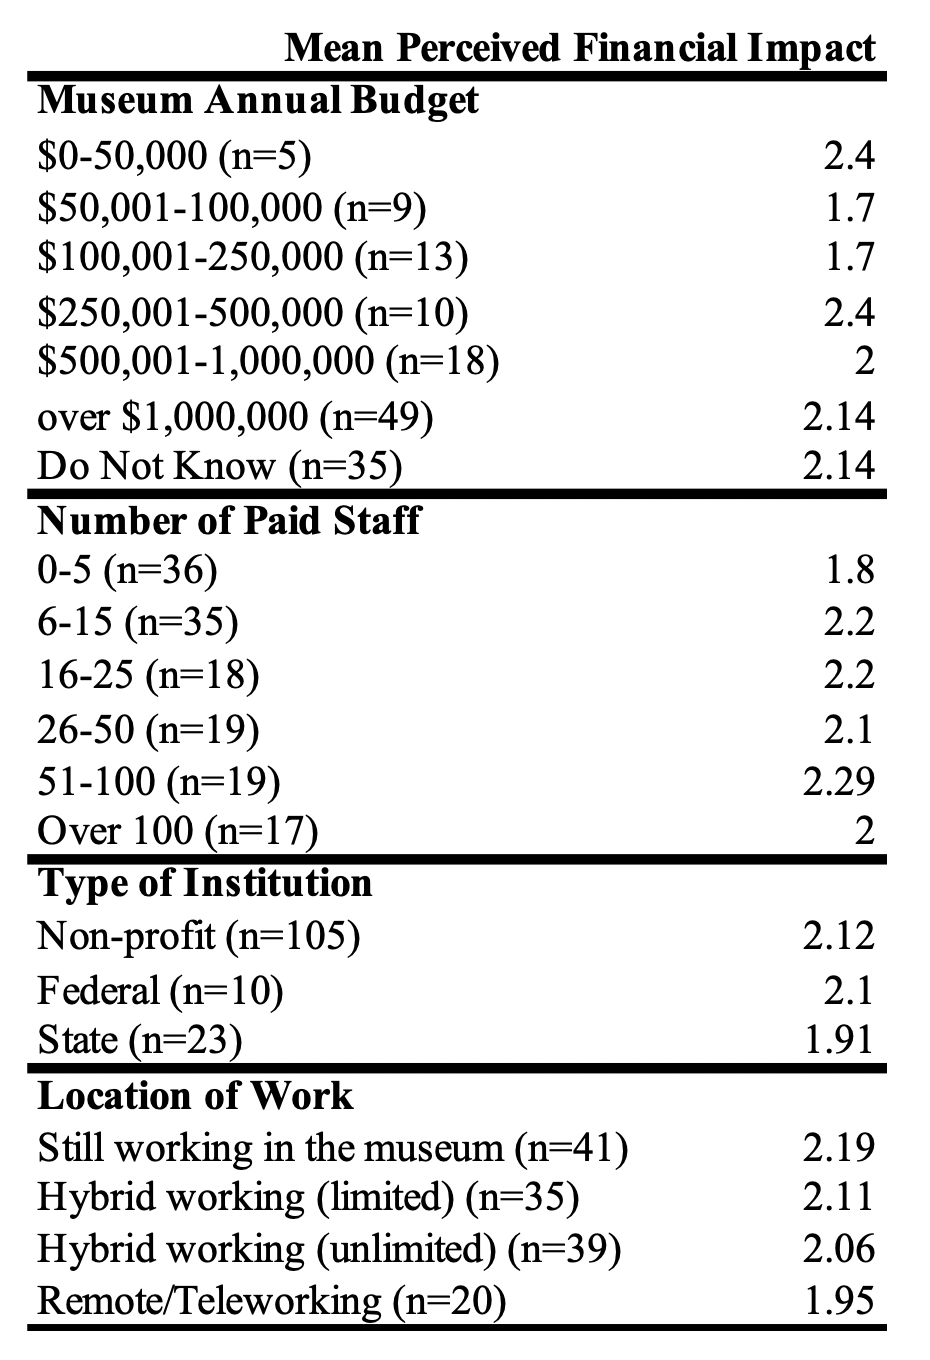 Table 7. Factors that correlate with meanperceived fiscal impact.